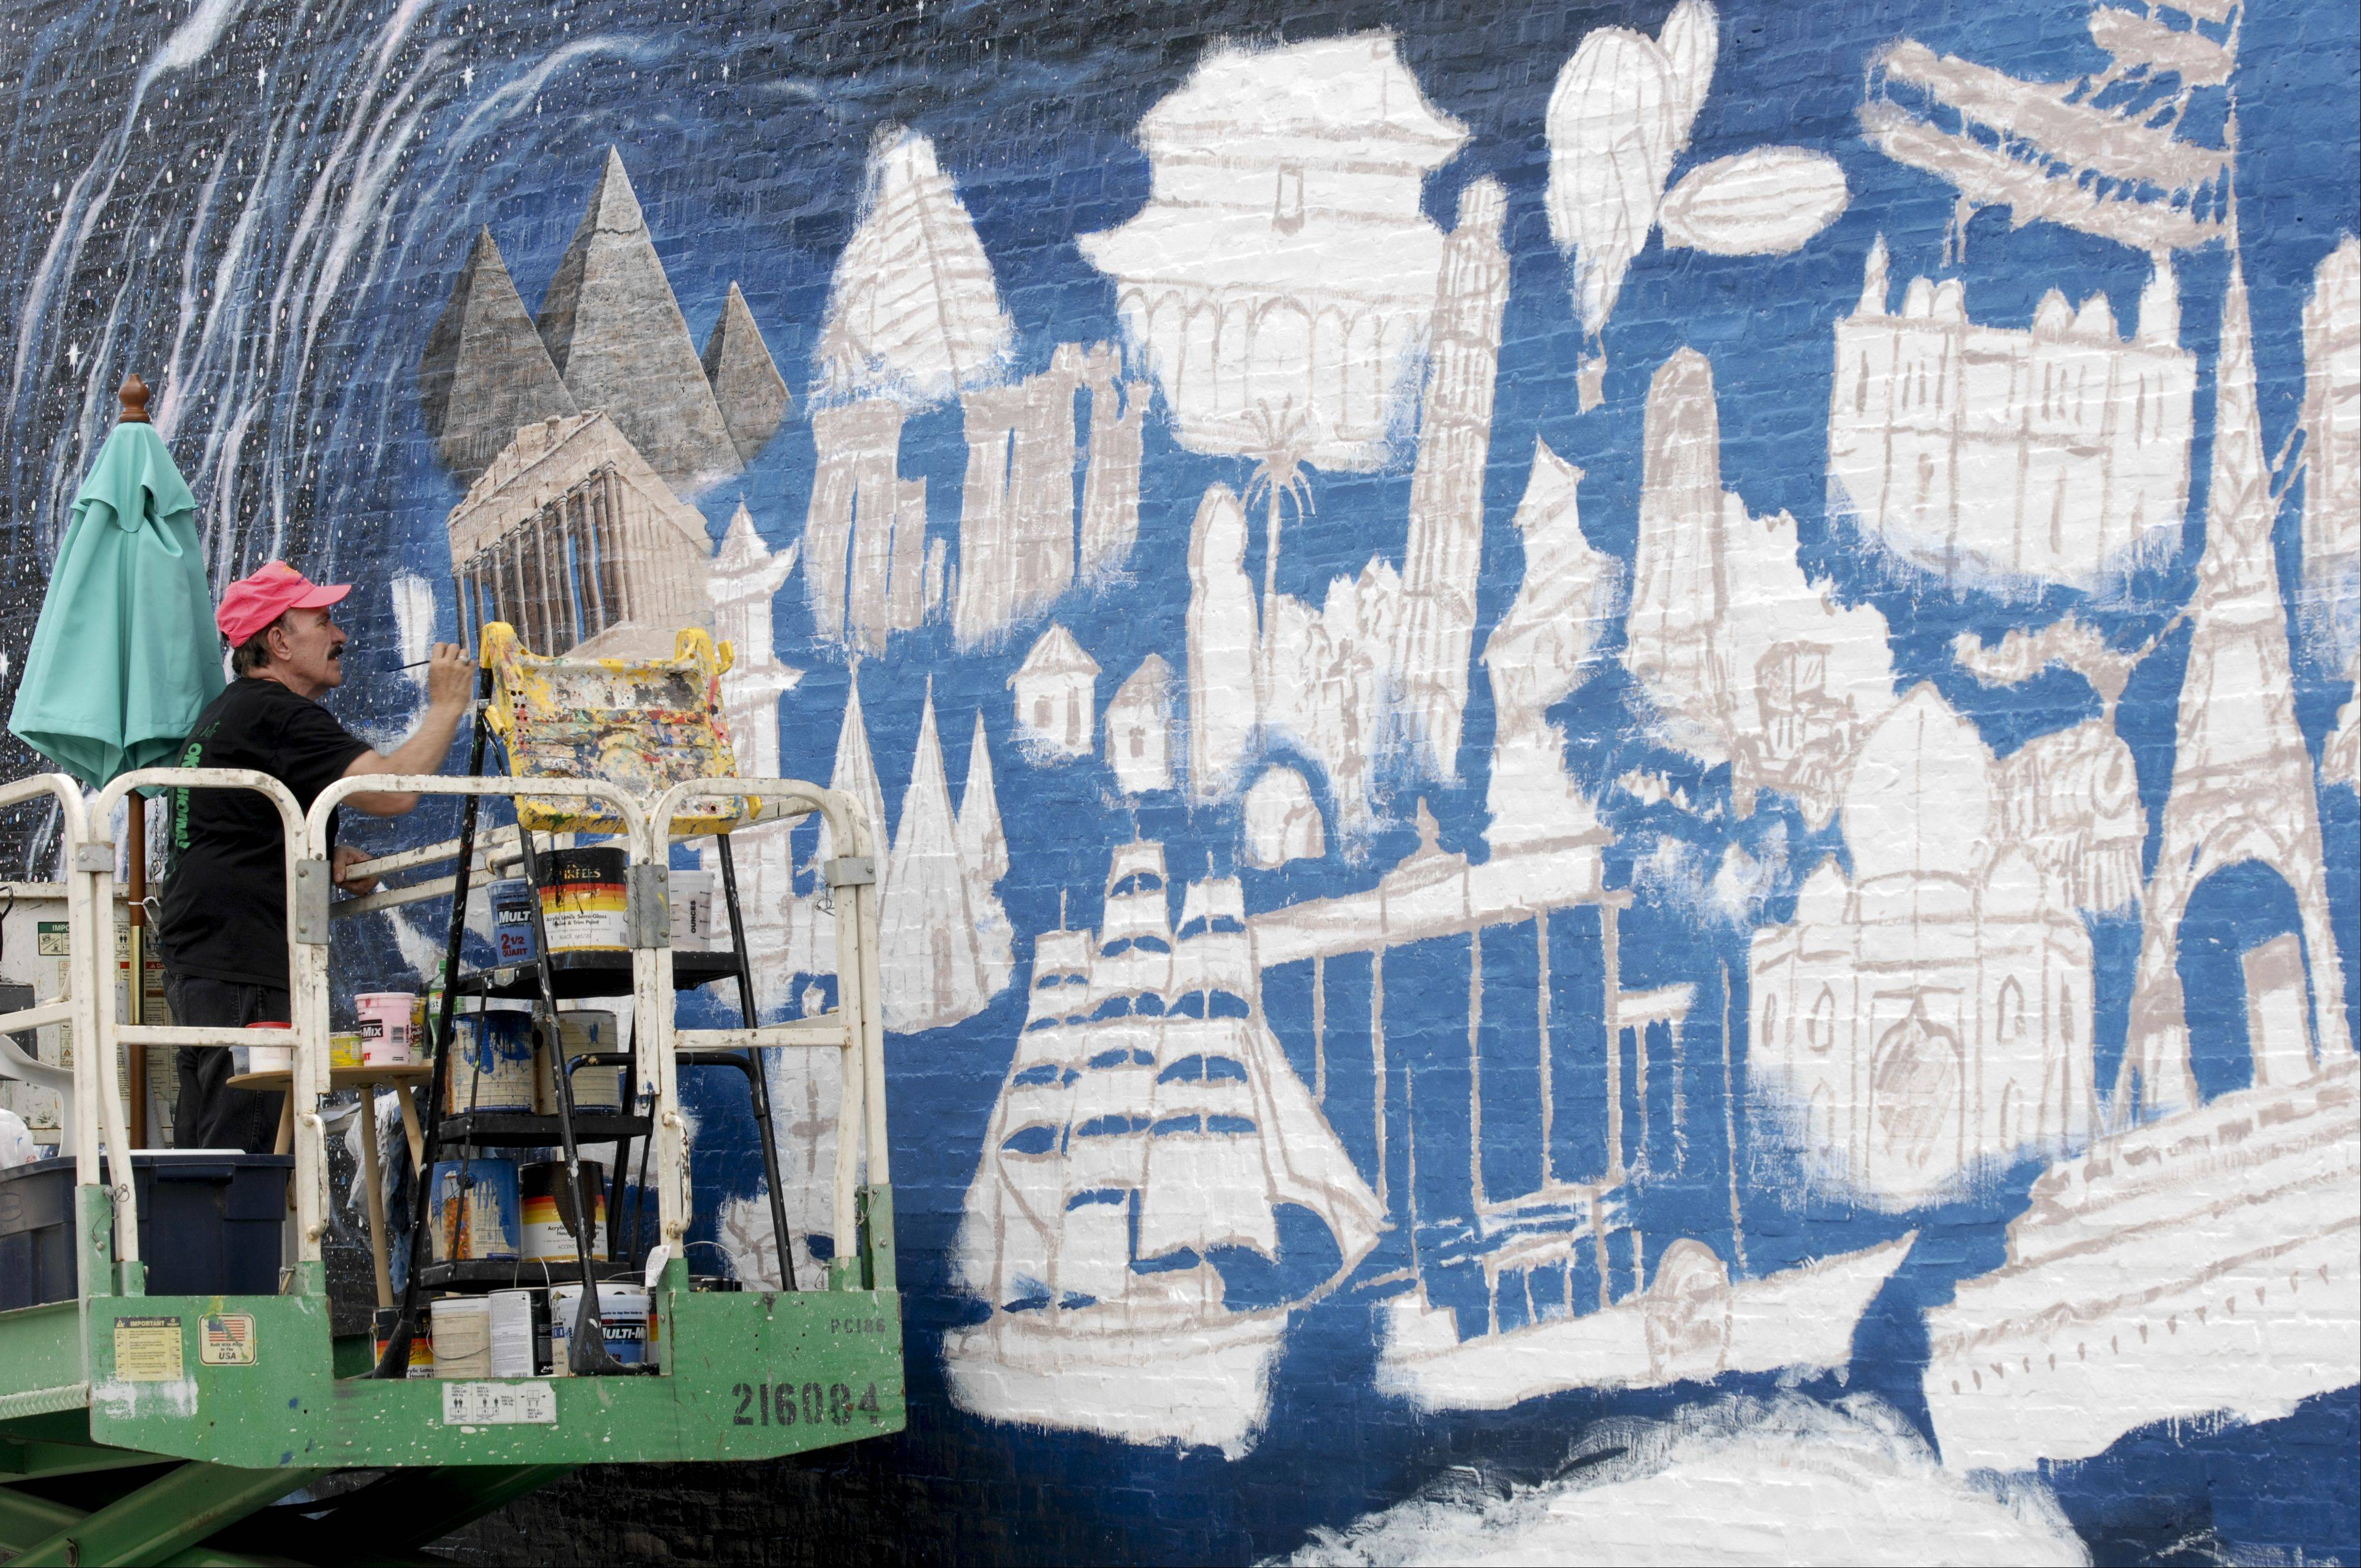 When it's complete artist R.J. Ogren's mural in downtown Wheaton will be roughly 70 feet wide and 19 feet high.